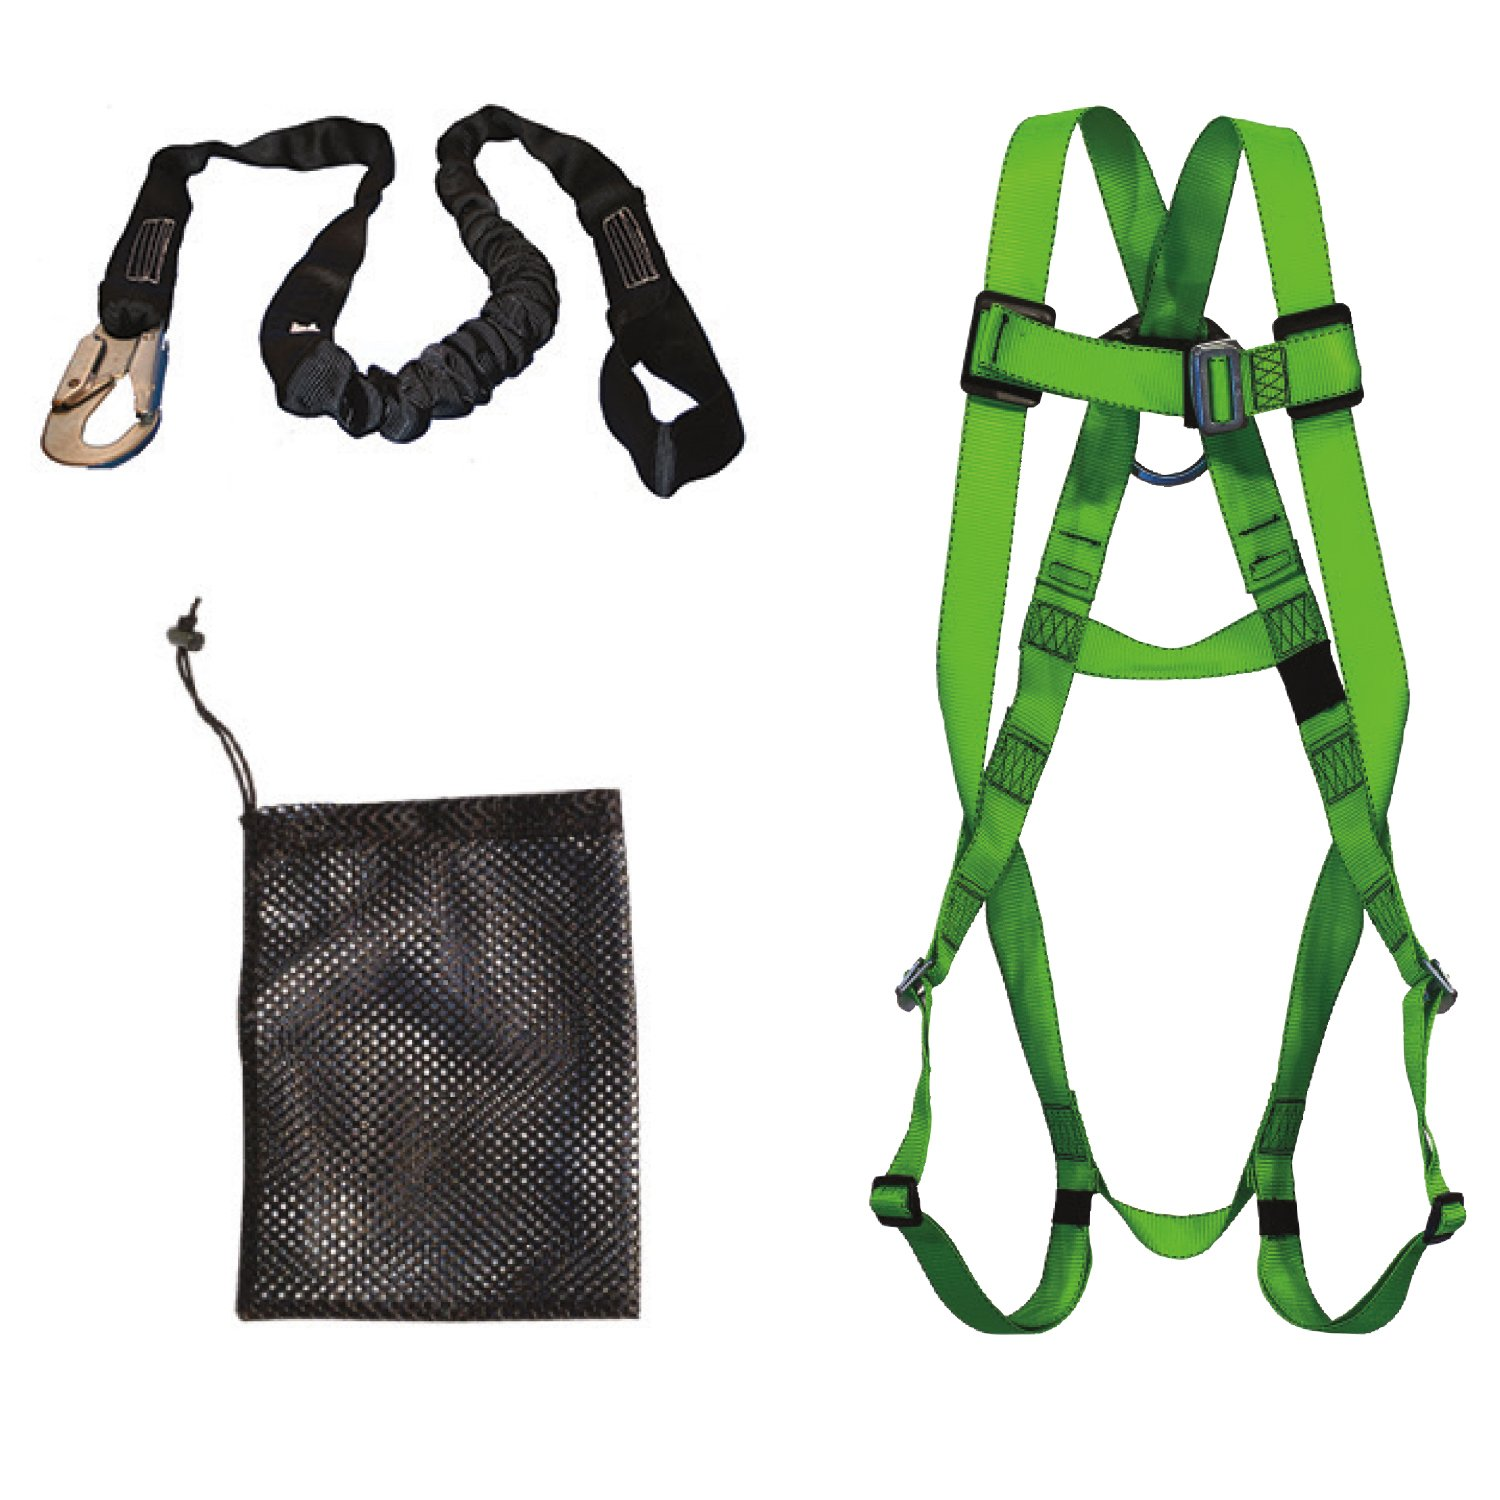 PeakWorks V8252096 - Compliance Fall Protection Kit - 6' (1.8) POY Lanyard - Safety Harness